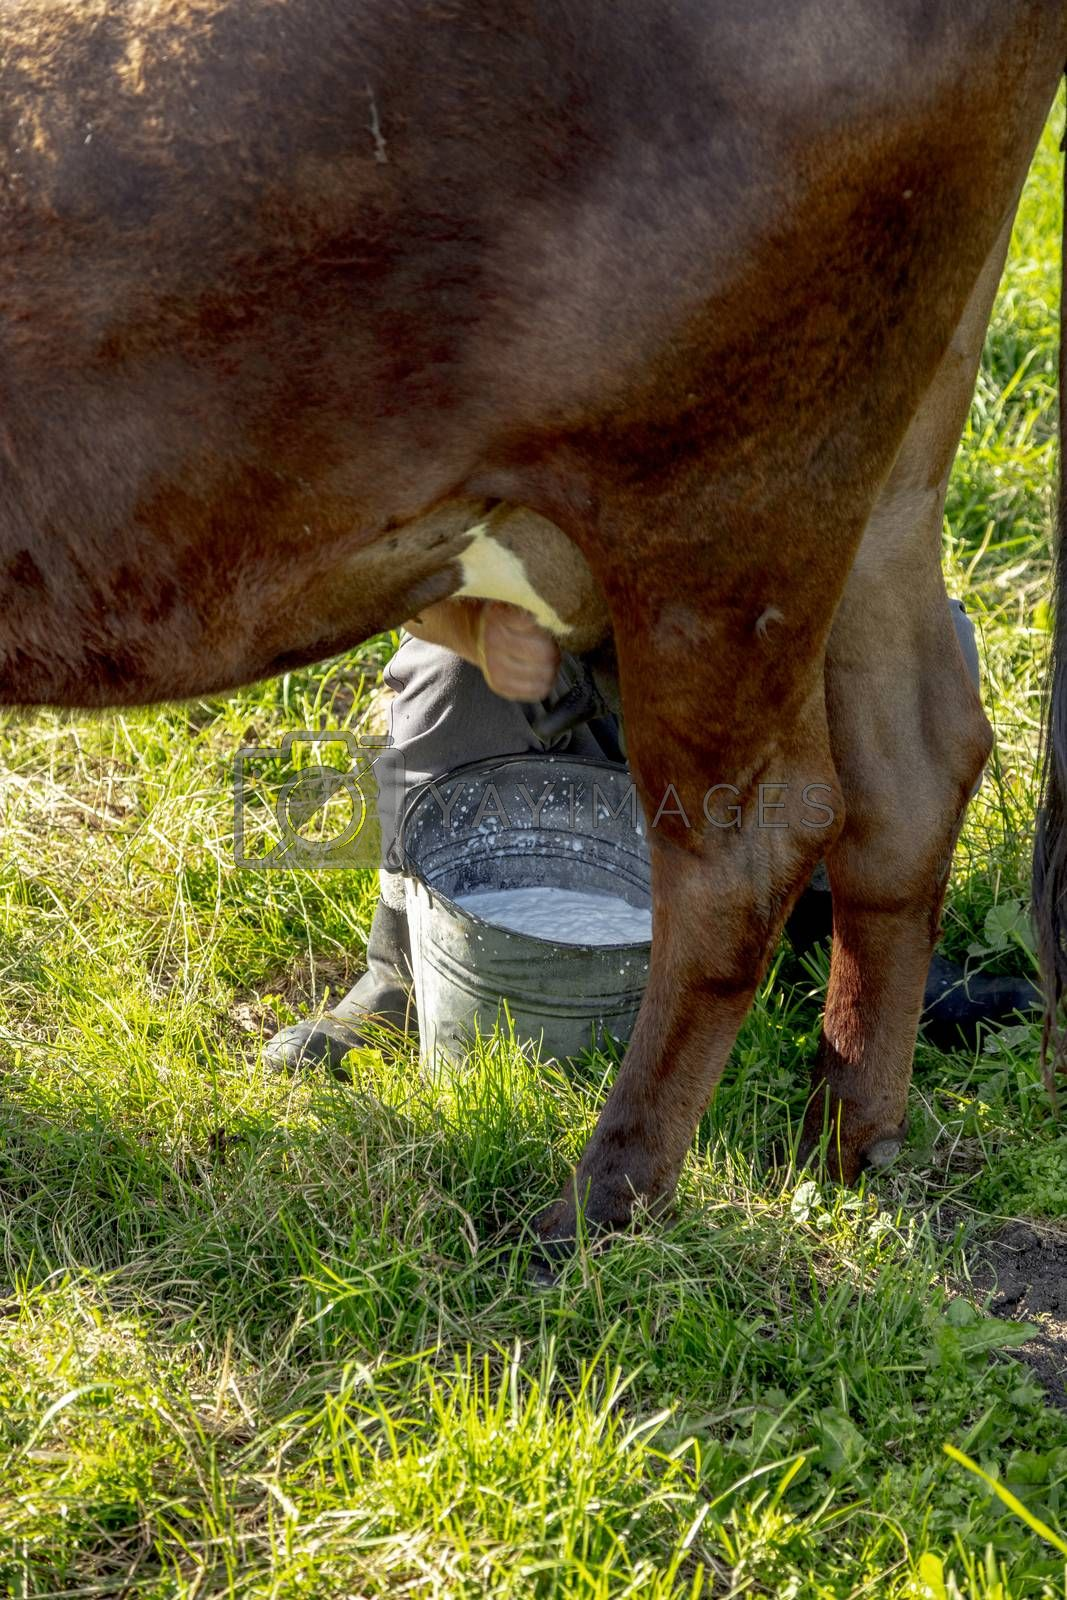 farmer milks cows by hand, old way to milk cows